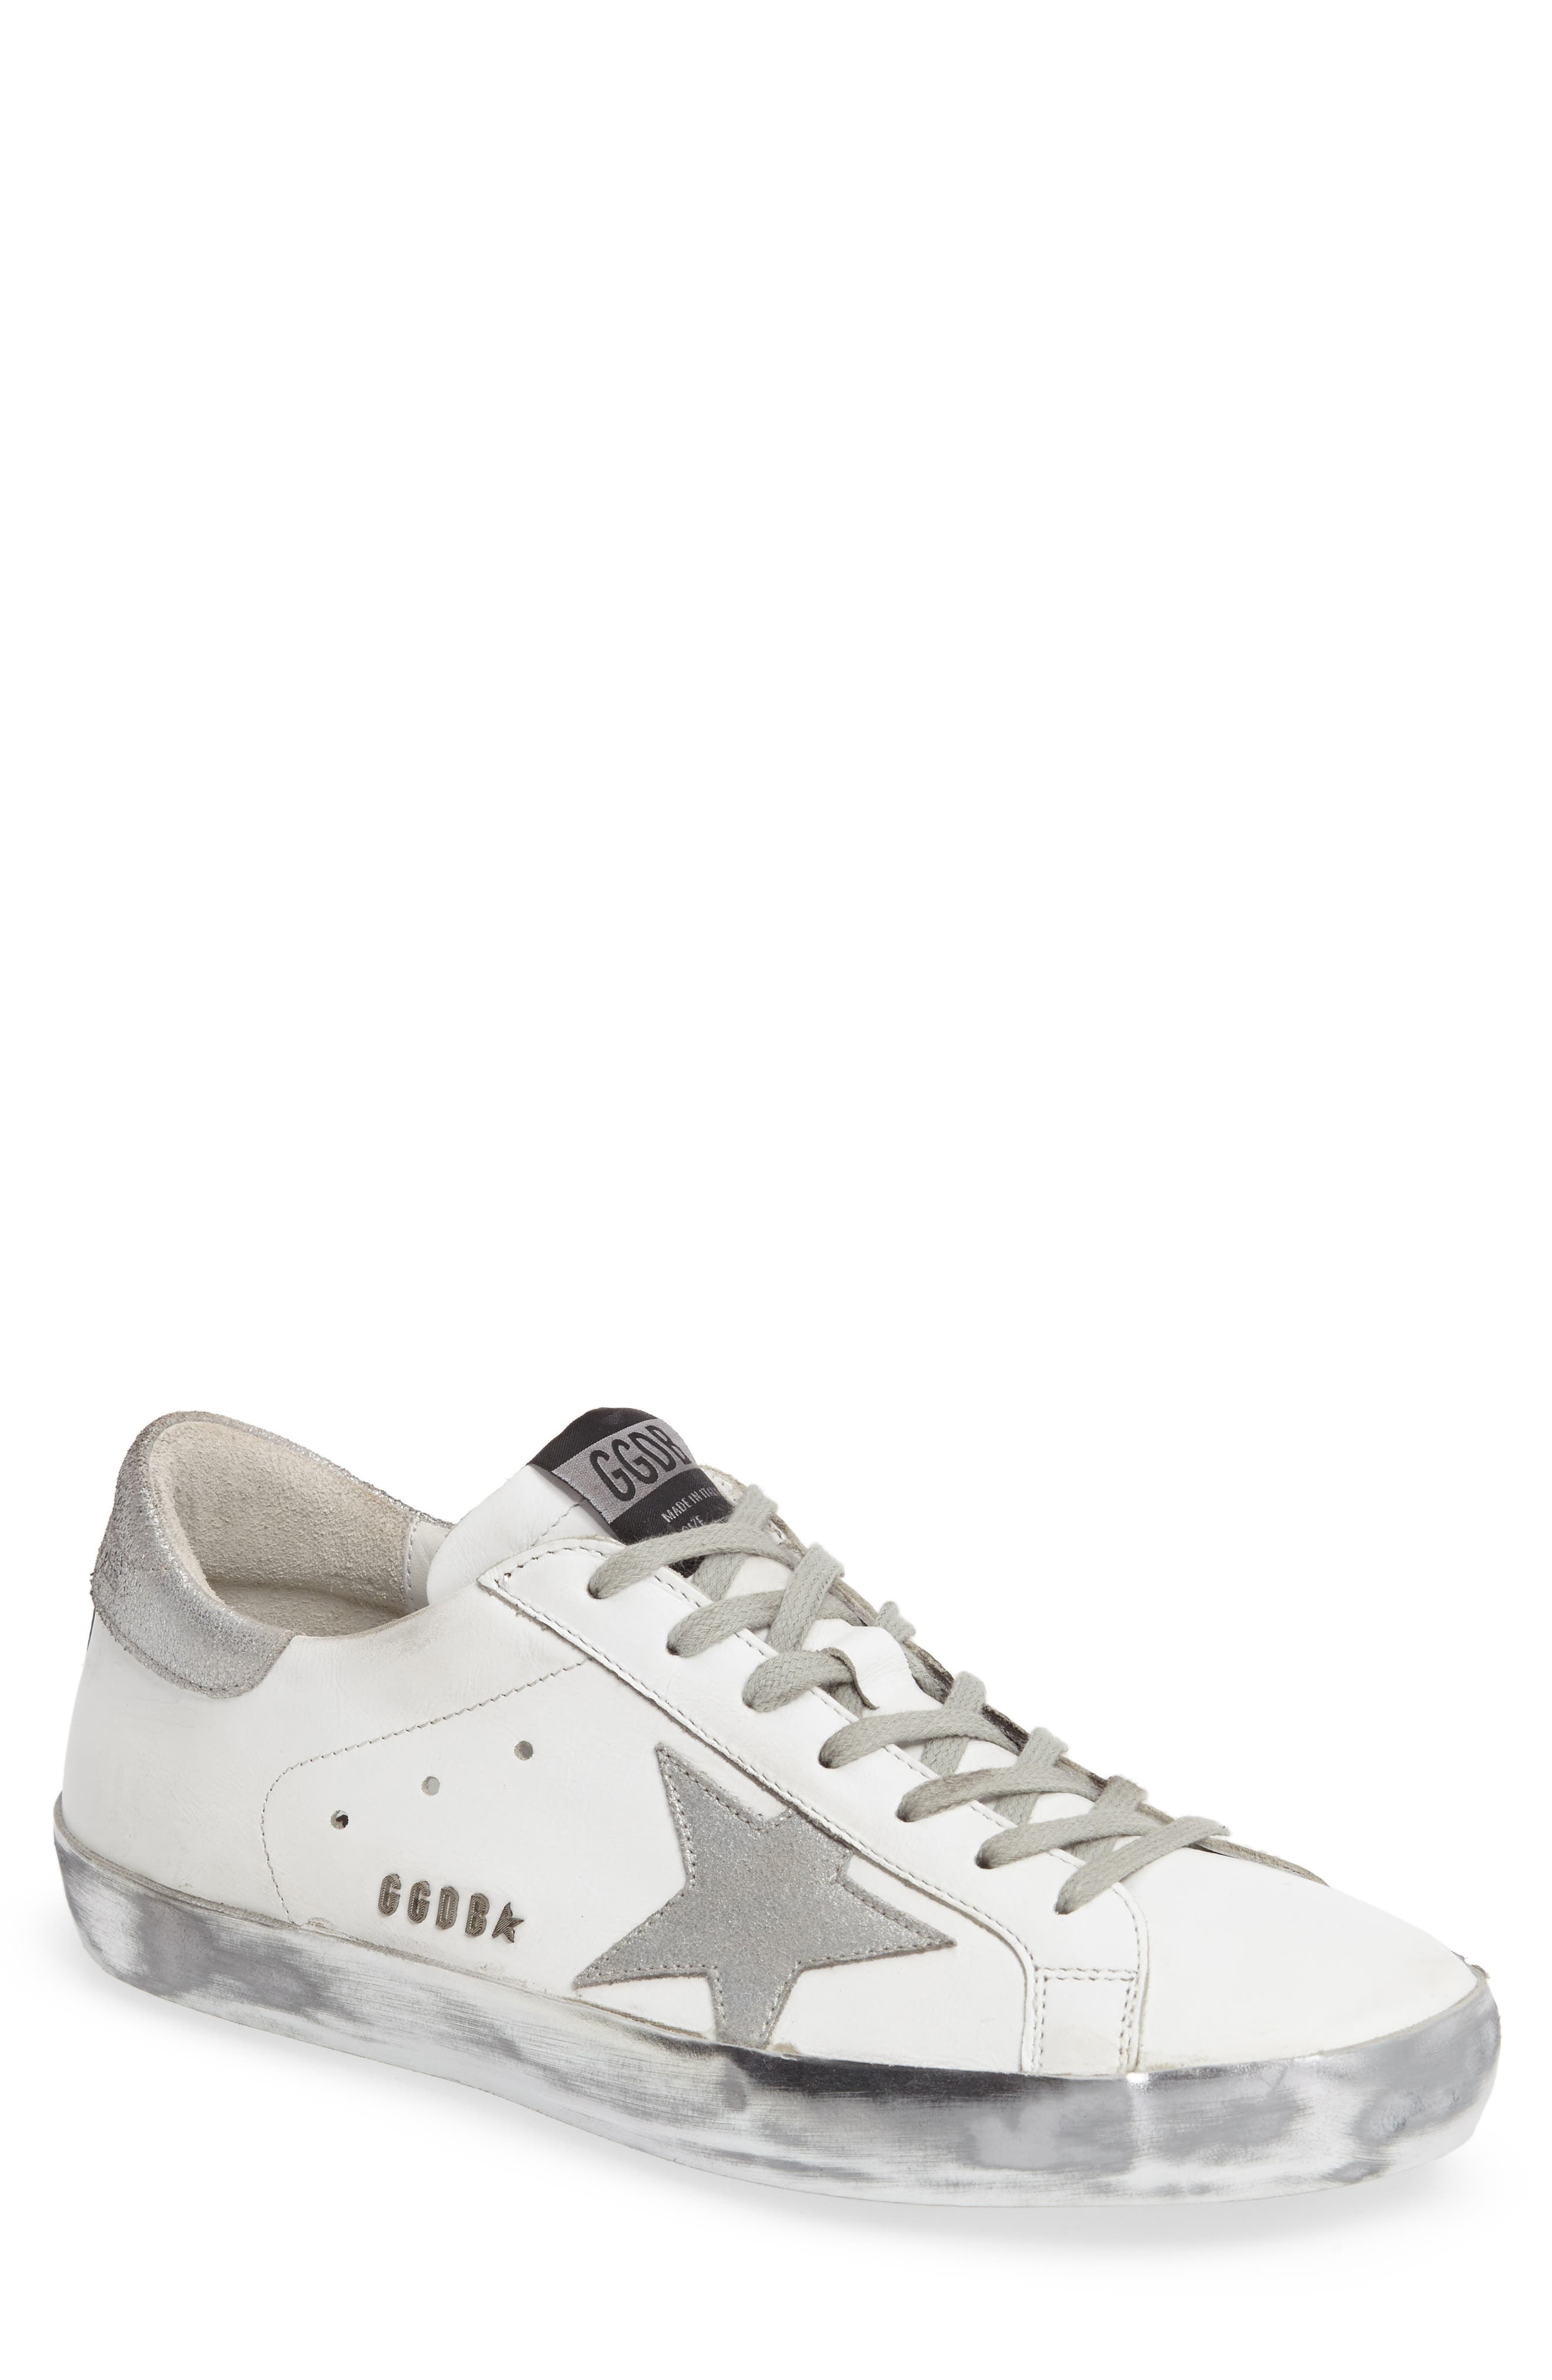 Main Image - Golden Goose 'Superstar' Sneaker (Men)